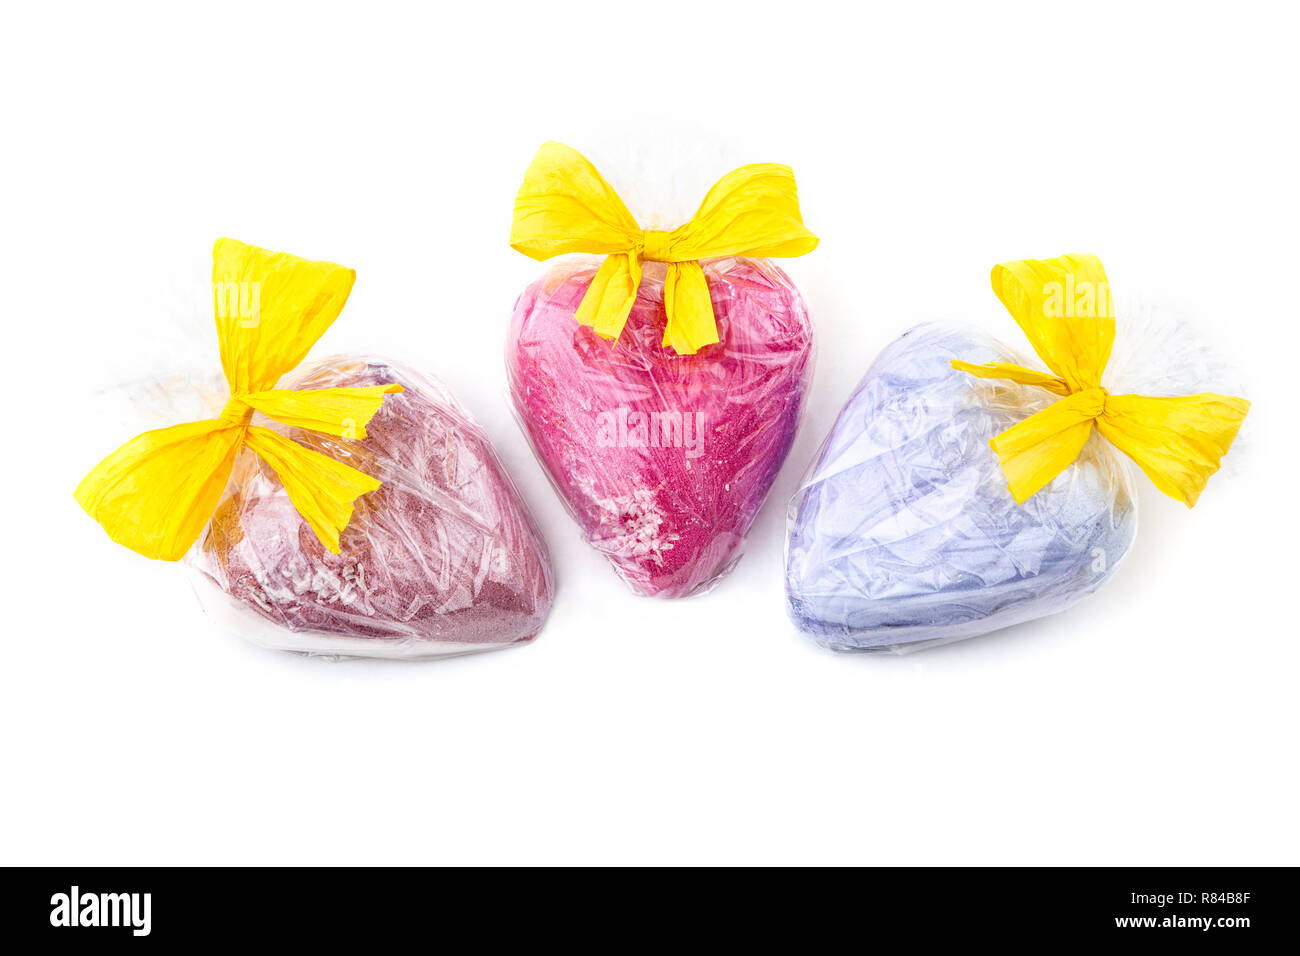 Heart shaped bath bombs gift wrapped on white background - Stock Image